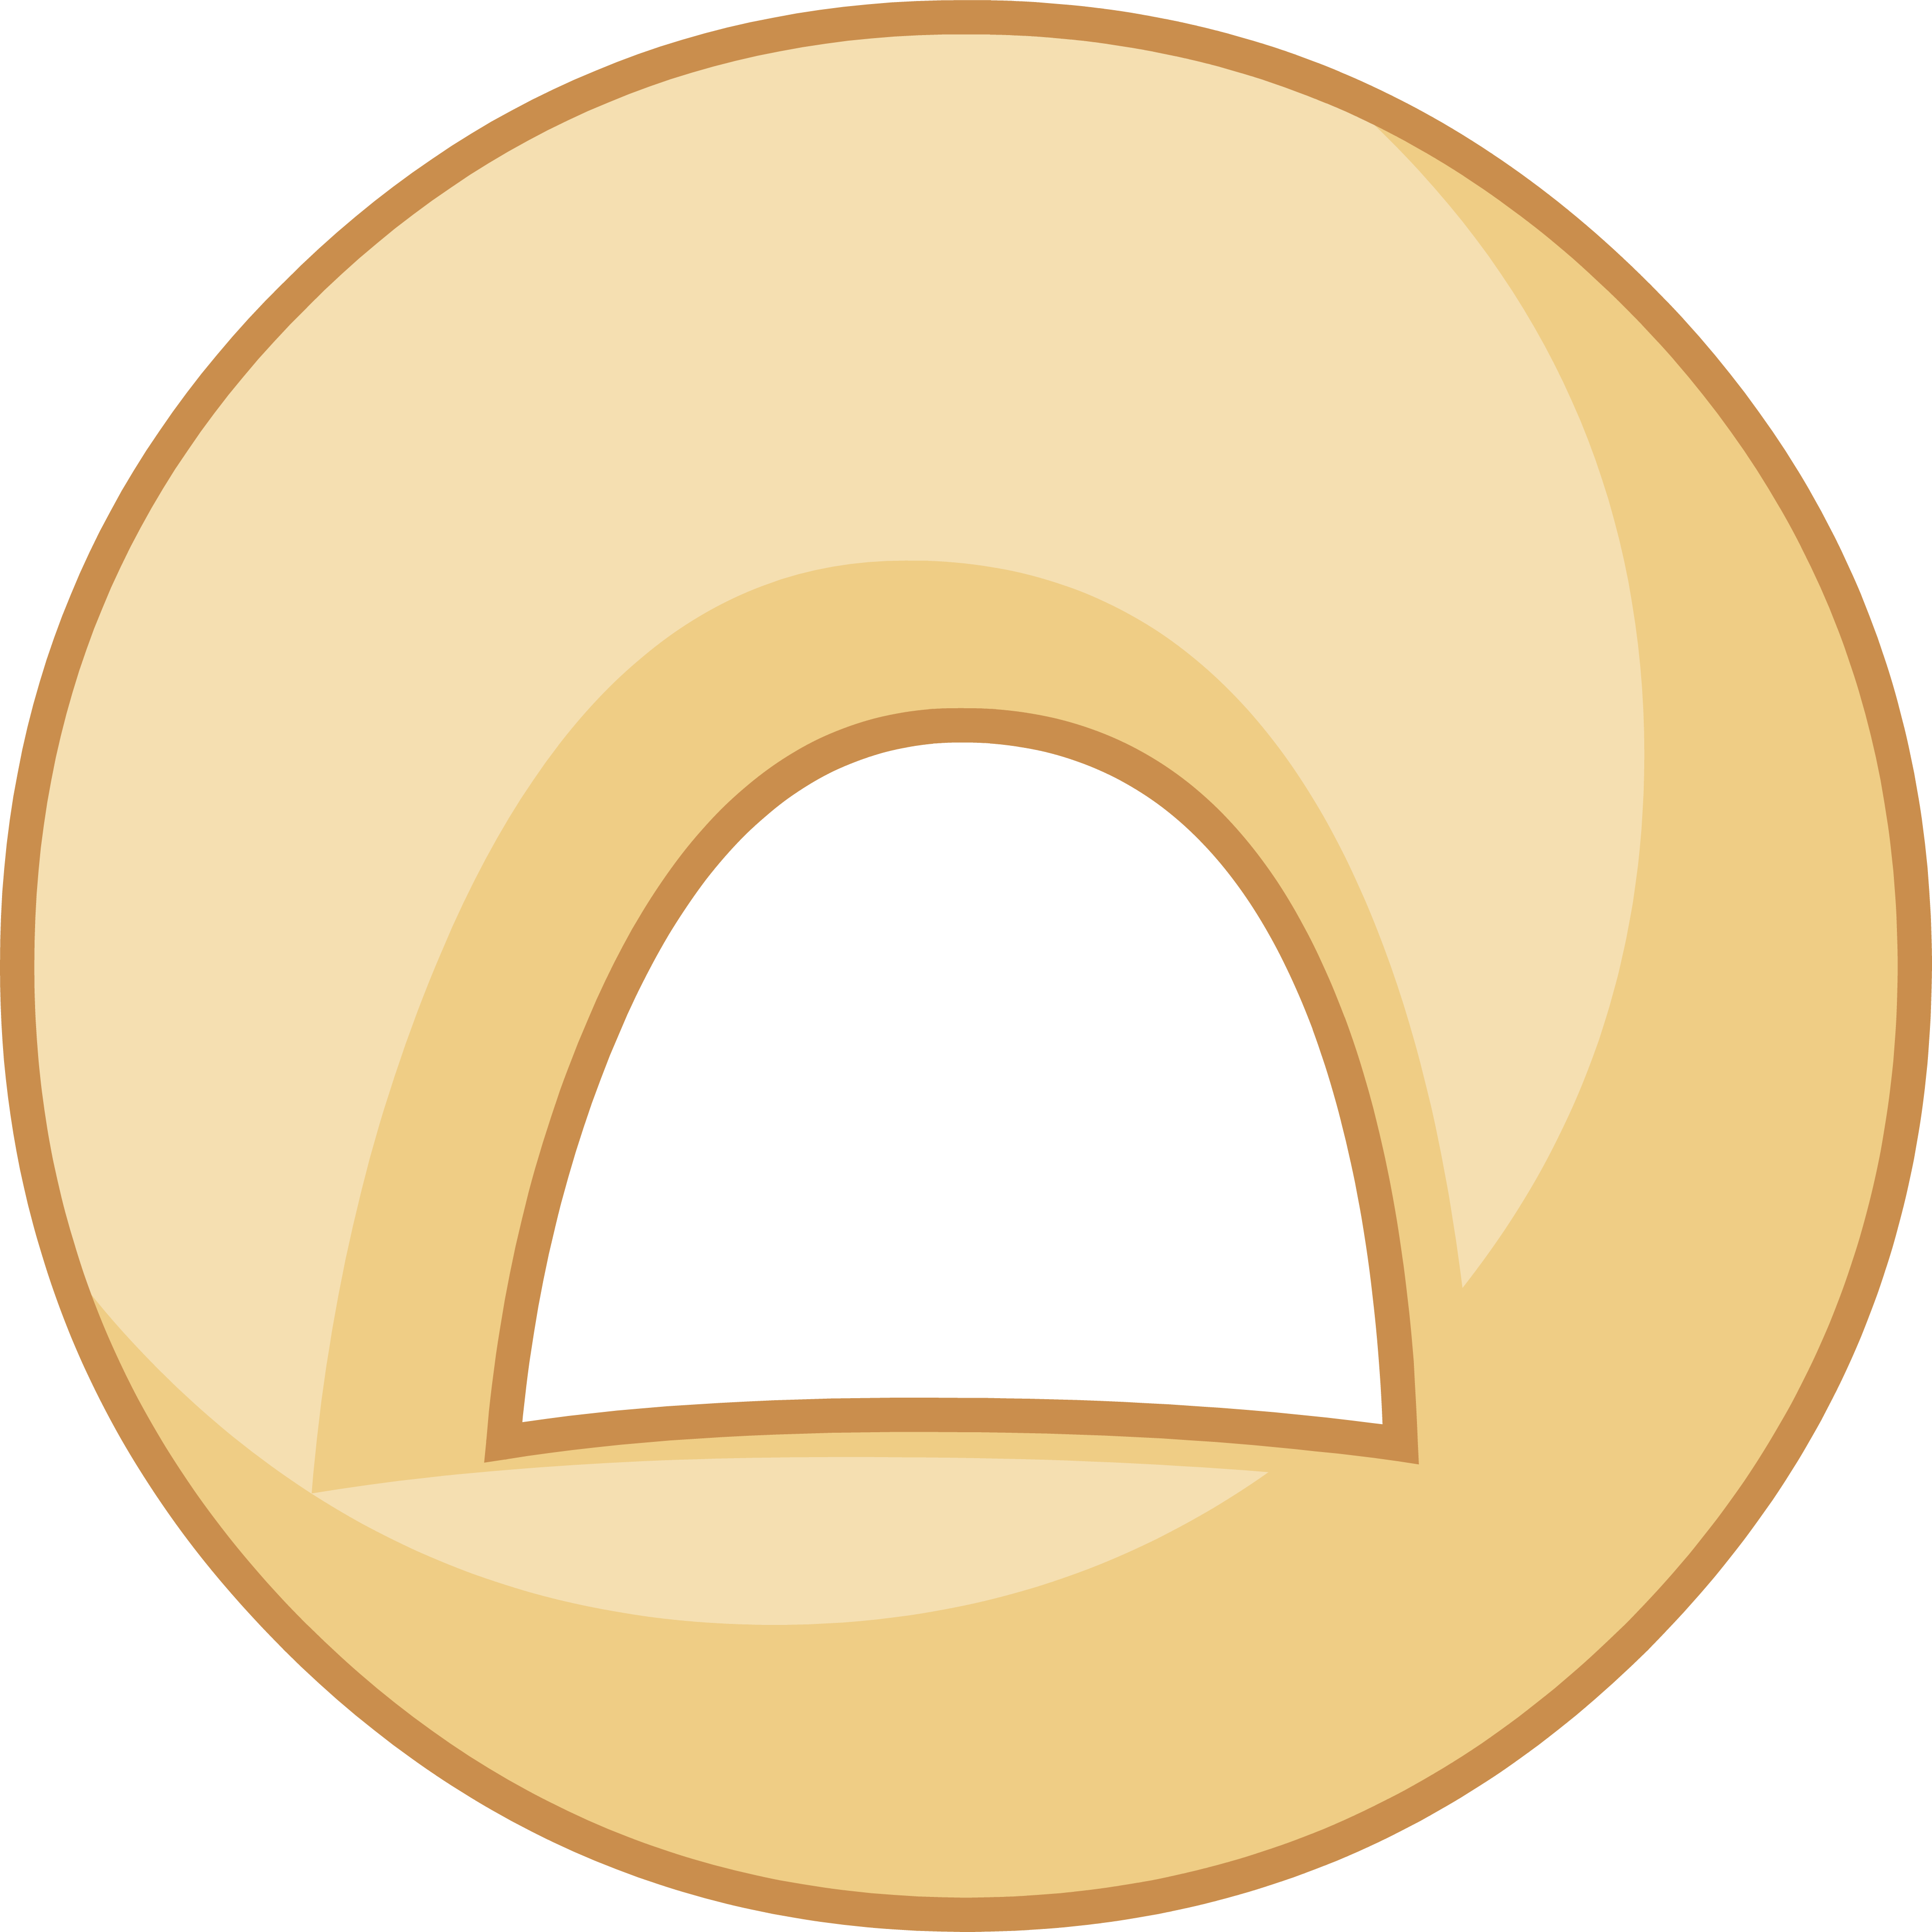 File:Donut C Frown0003.png